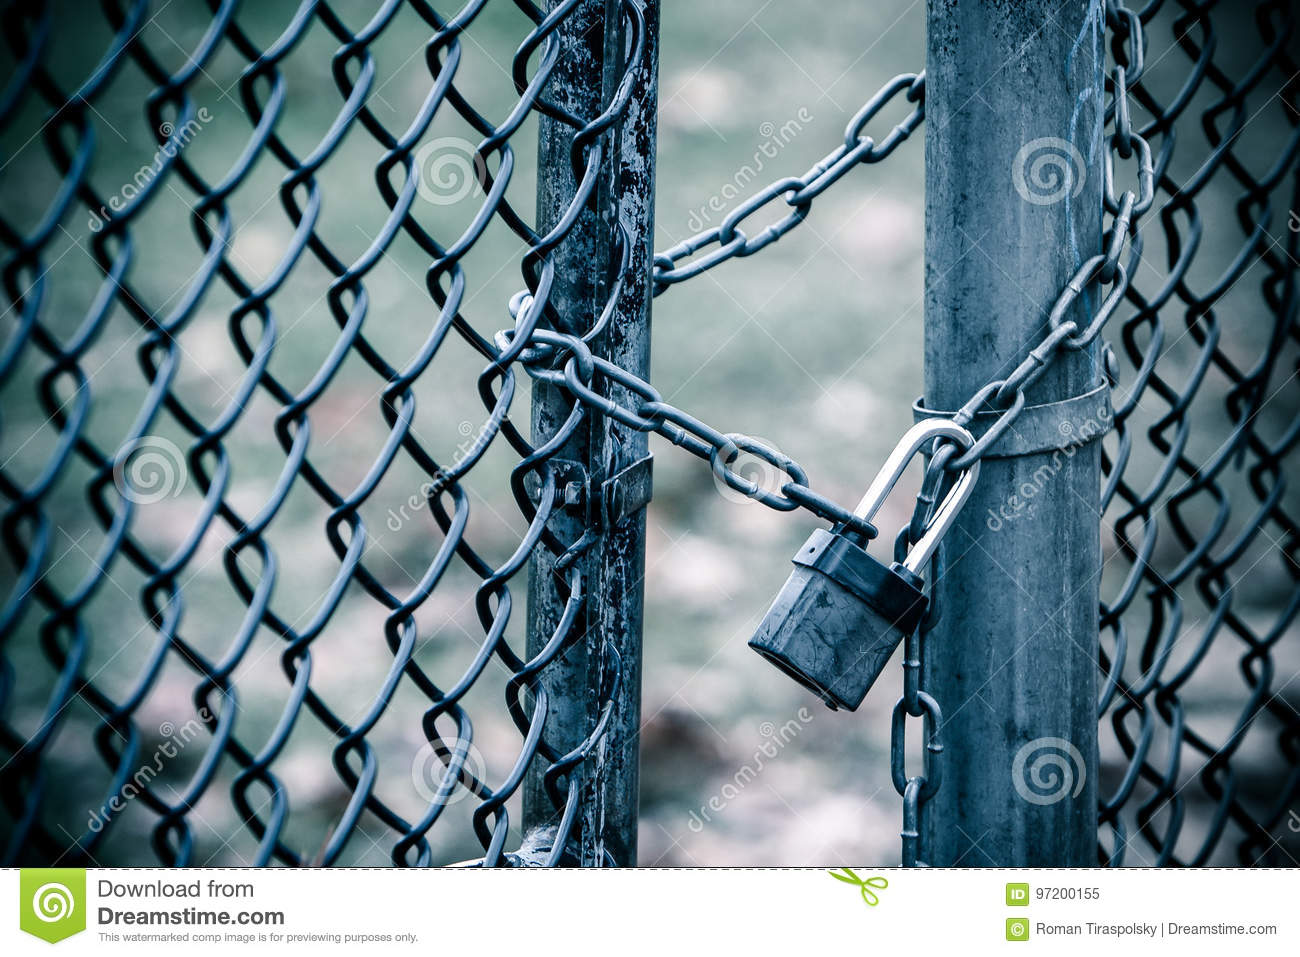 Padlock And Chain Keep A Gate Closed Stock Image - Image of ...